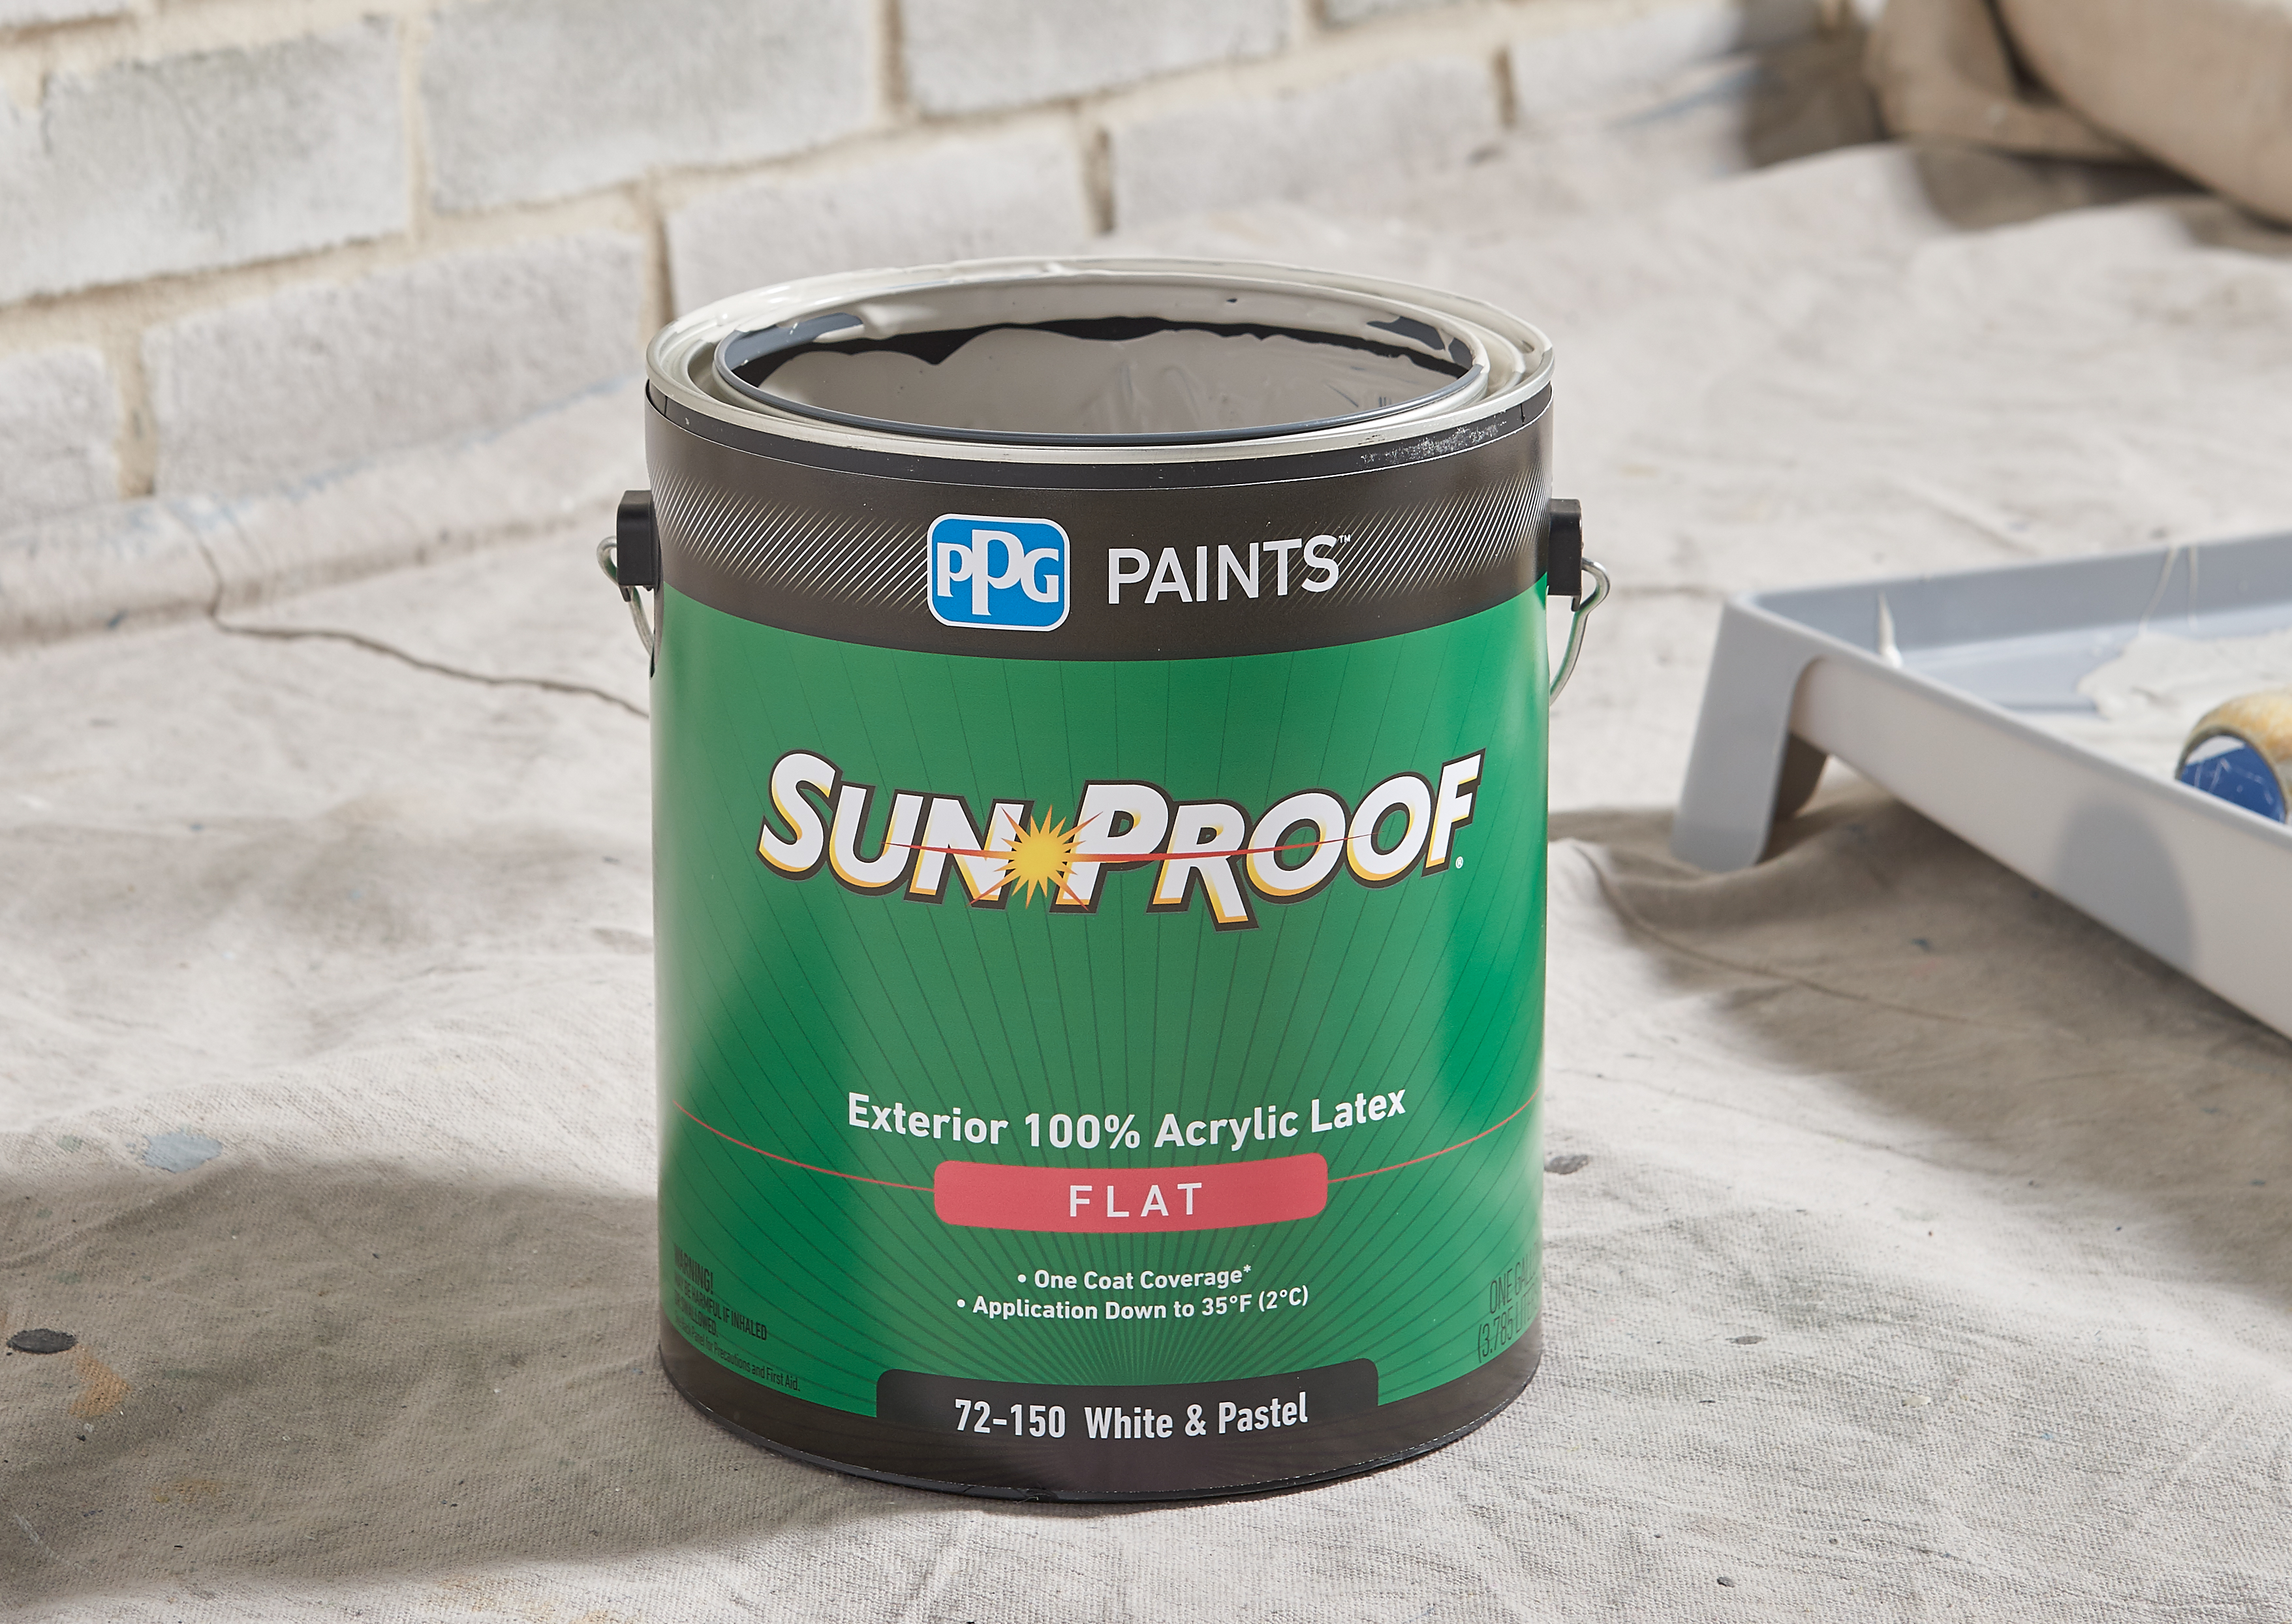 The Importance Of HighQuality Exterior Paint  JLC Online  Exteriors Paints Durability PPG